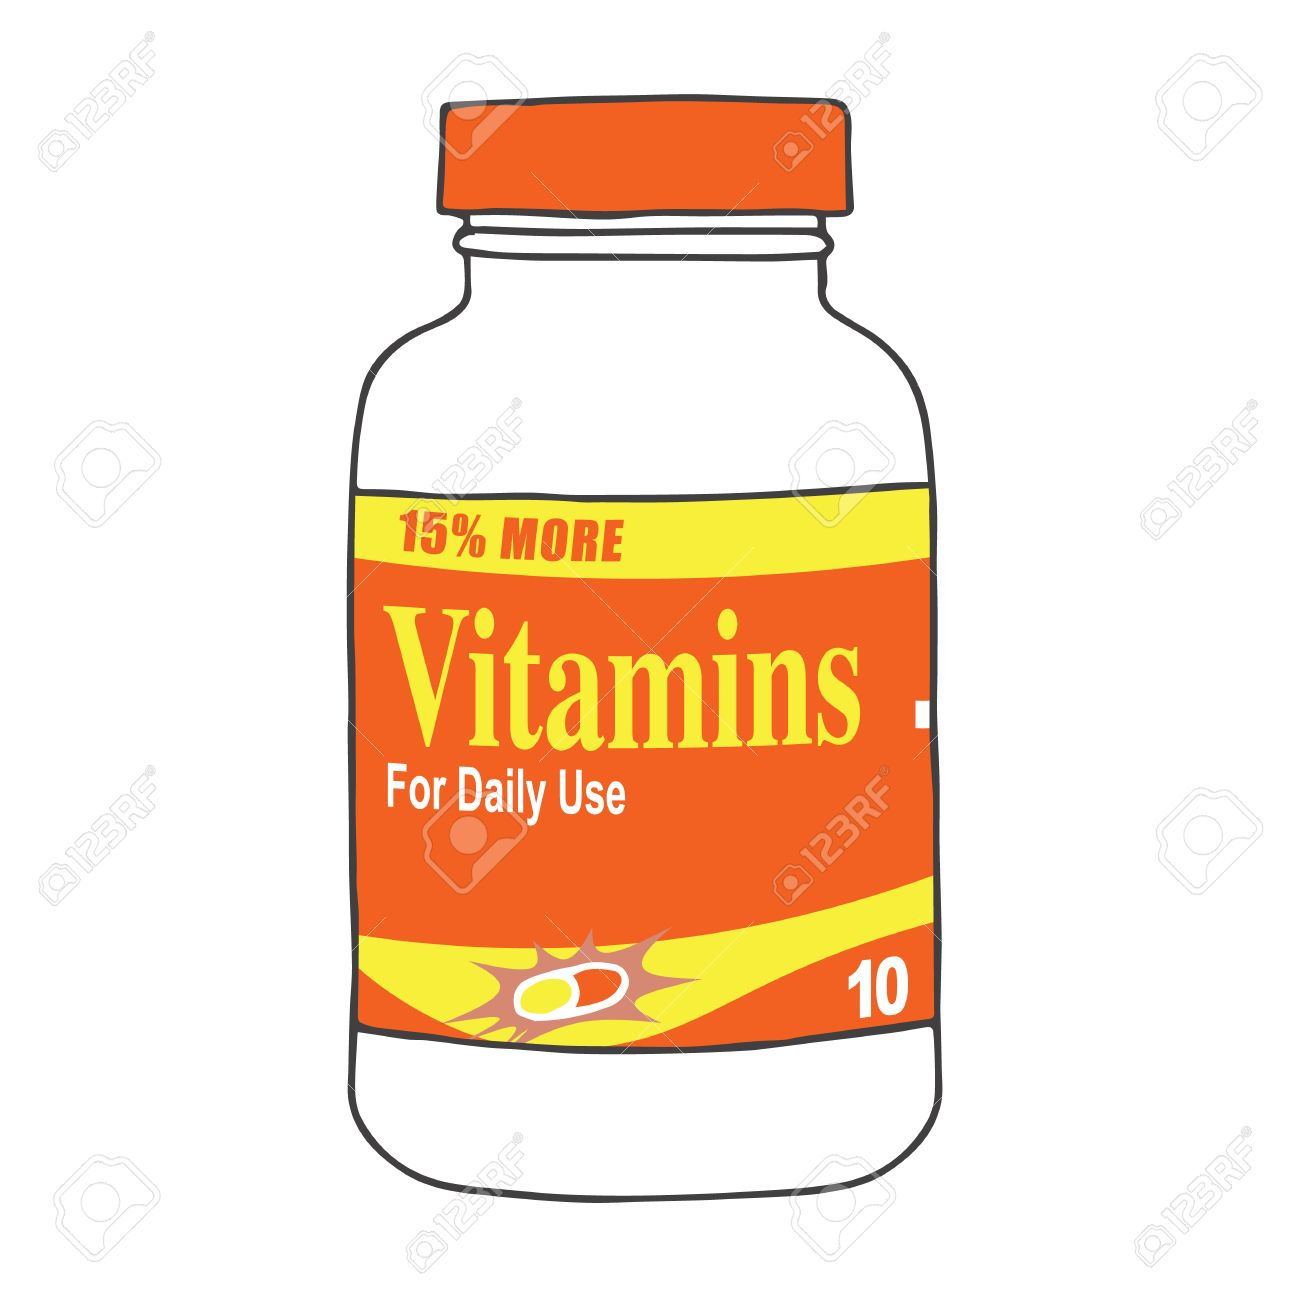 daily use vitamins keep you healthy and strong keep your bones rh 123rf com Vitamins Clip Art Black and White Clip Art Medicine Vitamins